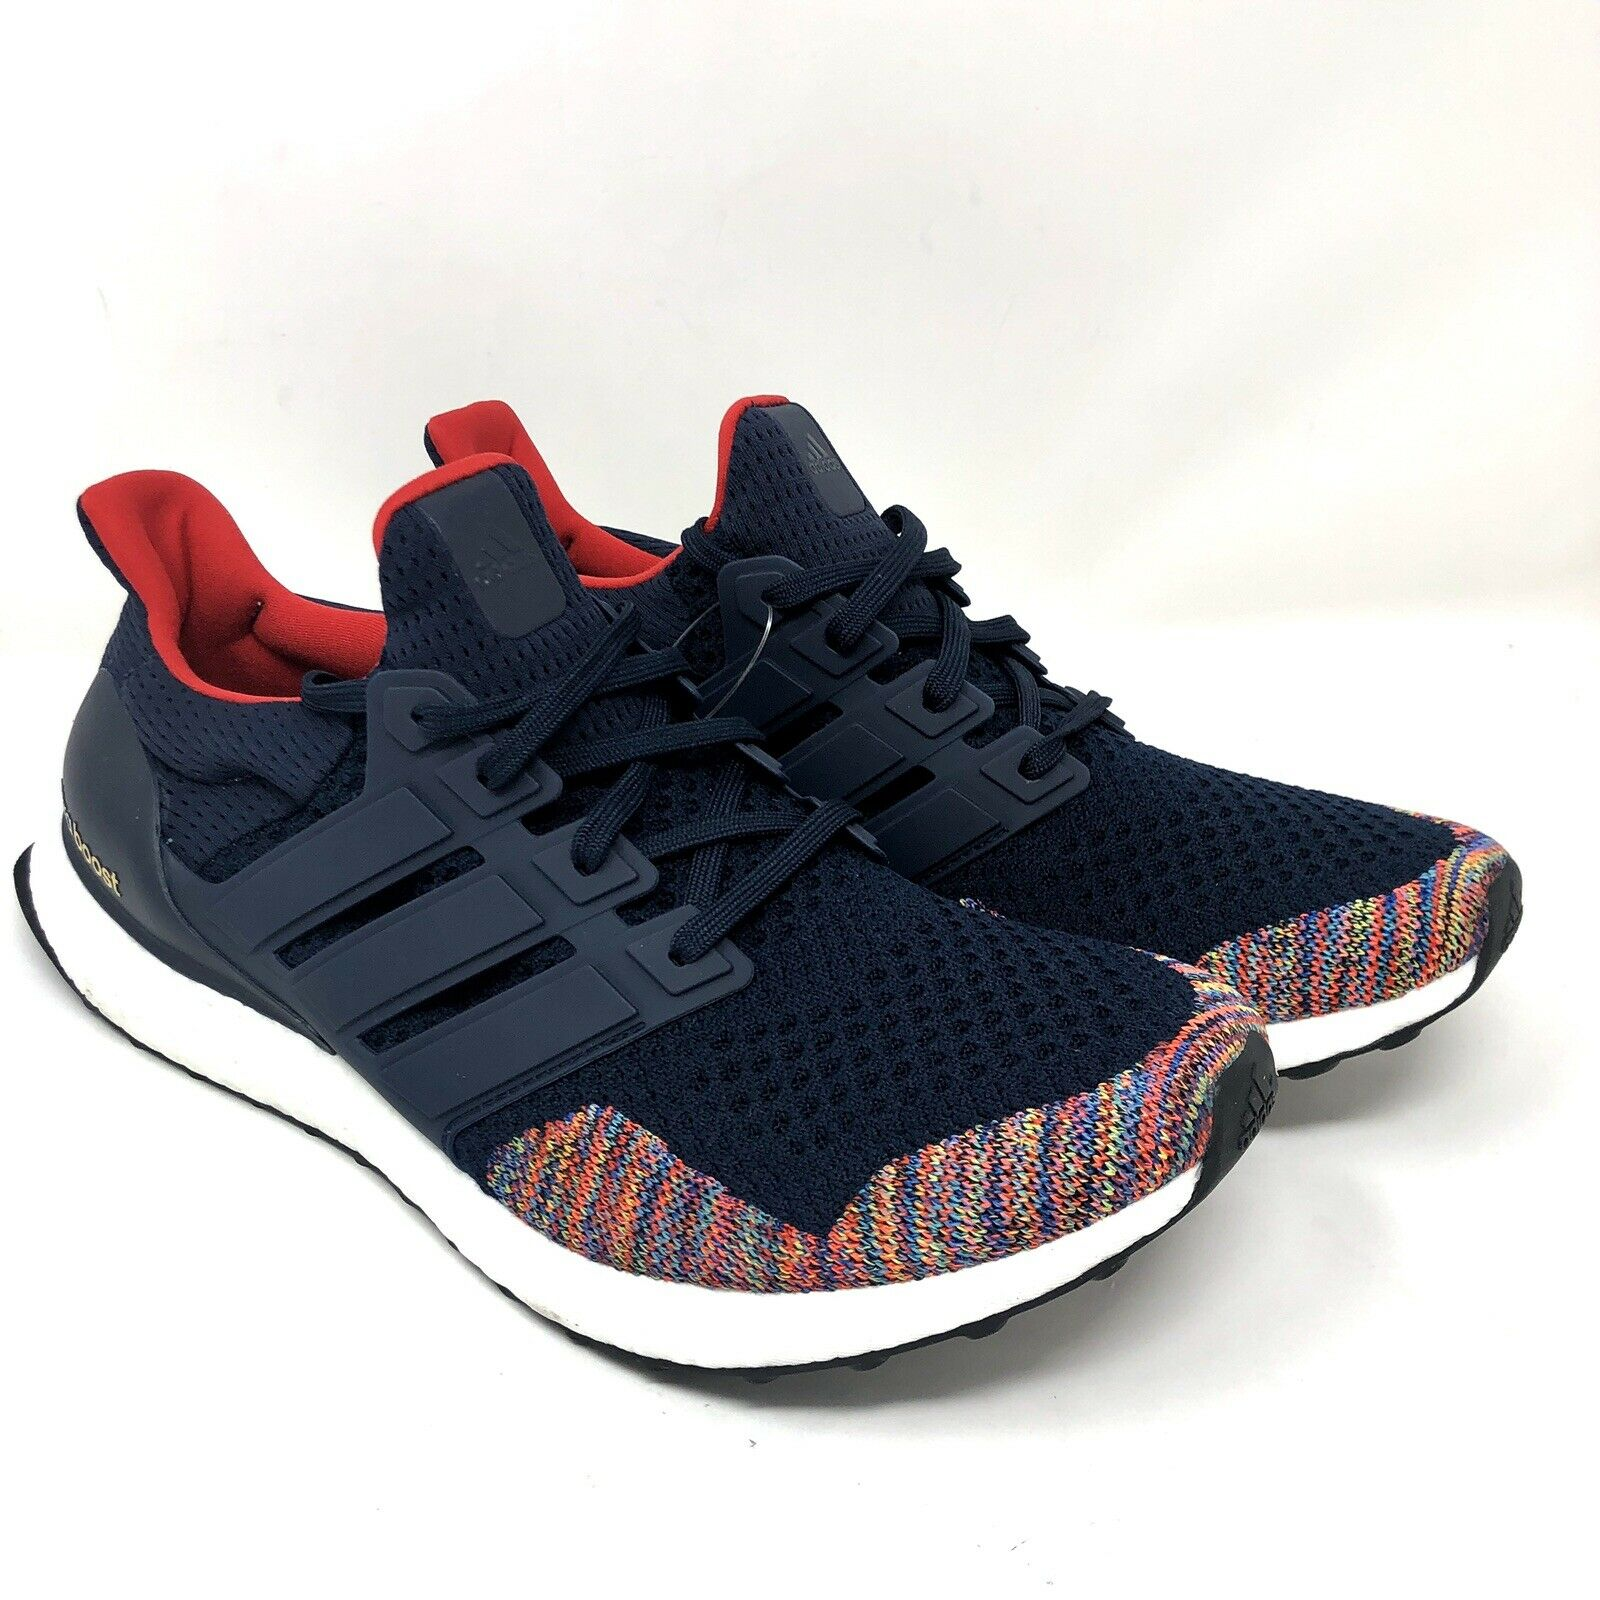 Adidas Ultra Boost LTD Mens Size 12 Collegiate Navy Vibrant Red Multi color Toe